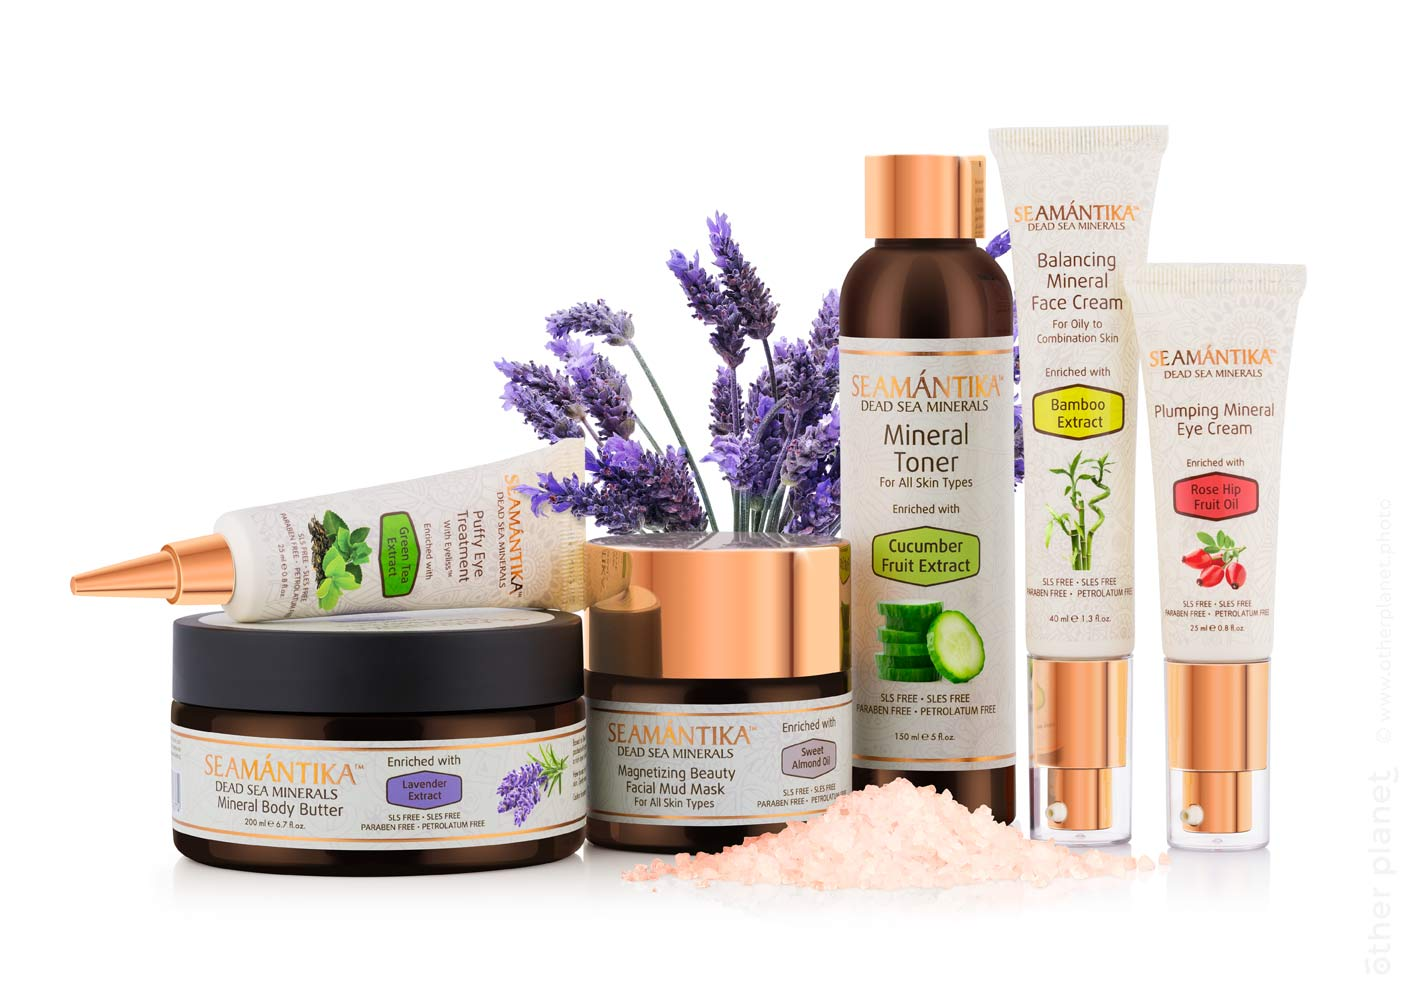 Arrangement of Semantika cosmetic products on white